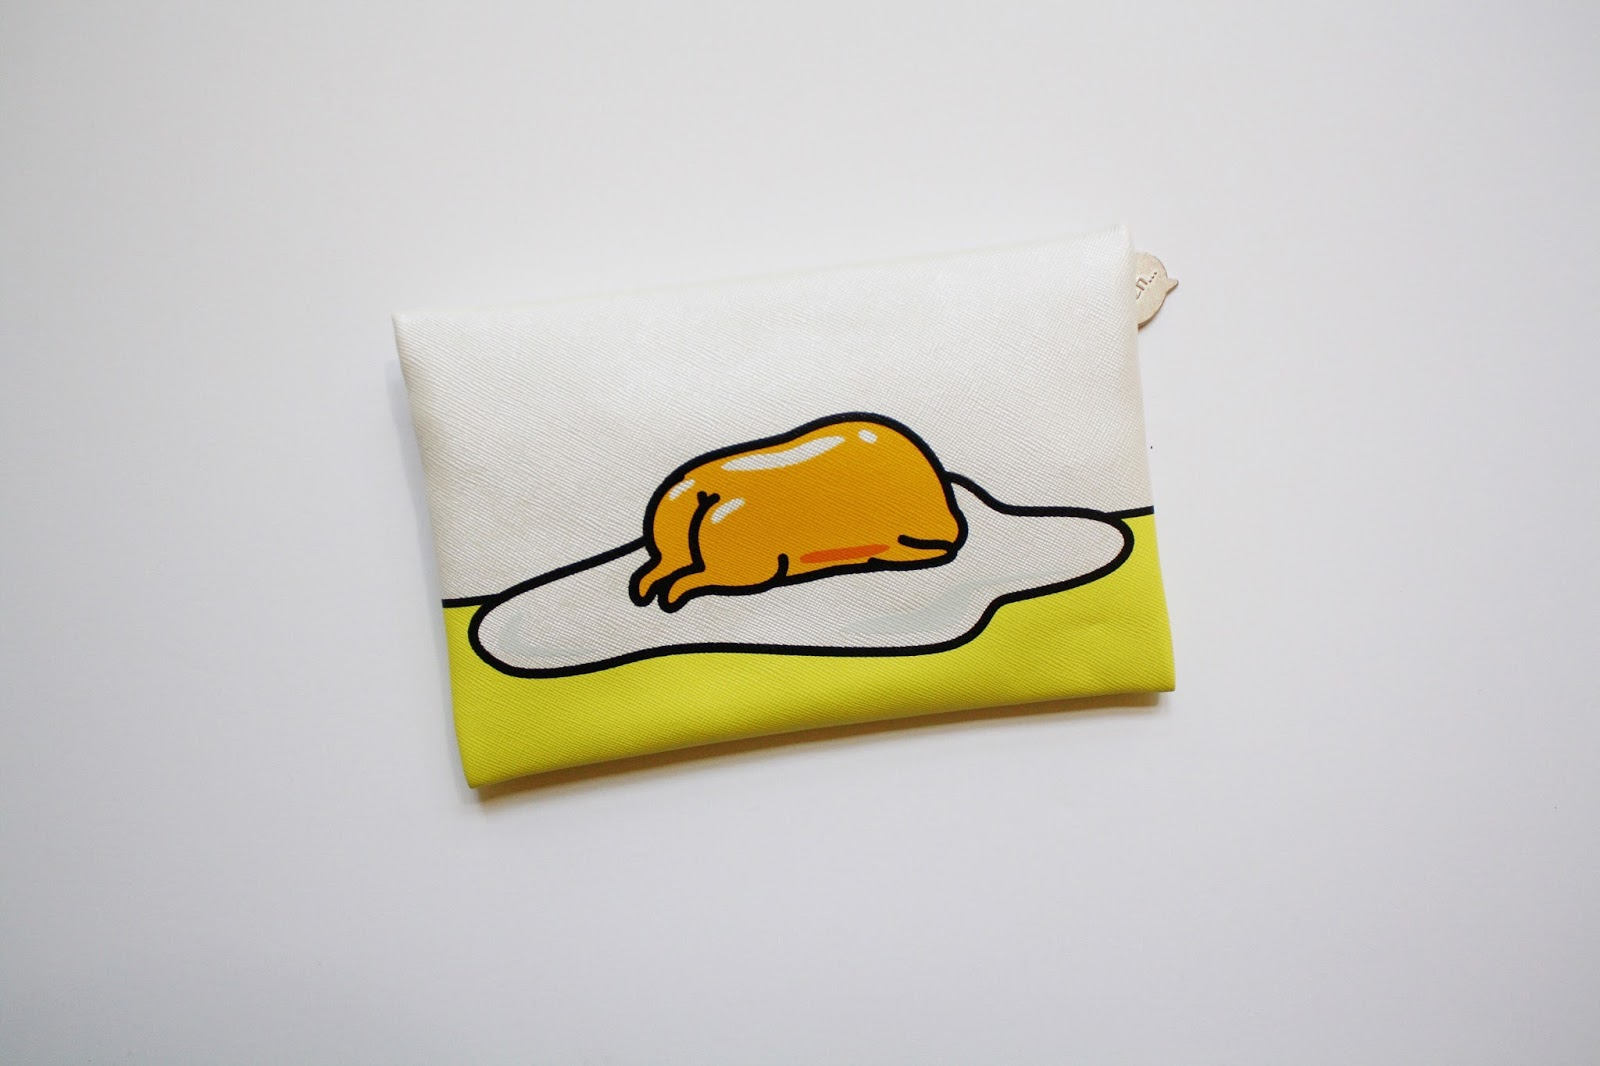 Gudetama Ipsy Glam Bag July 2017